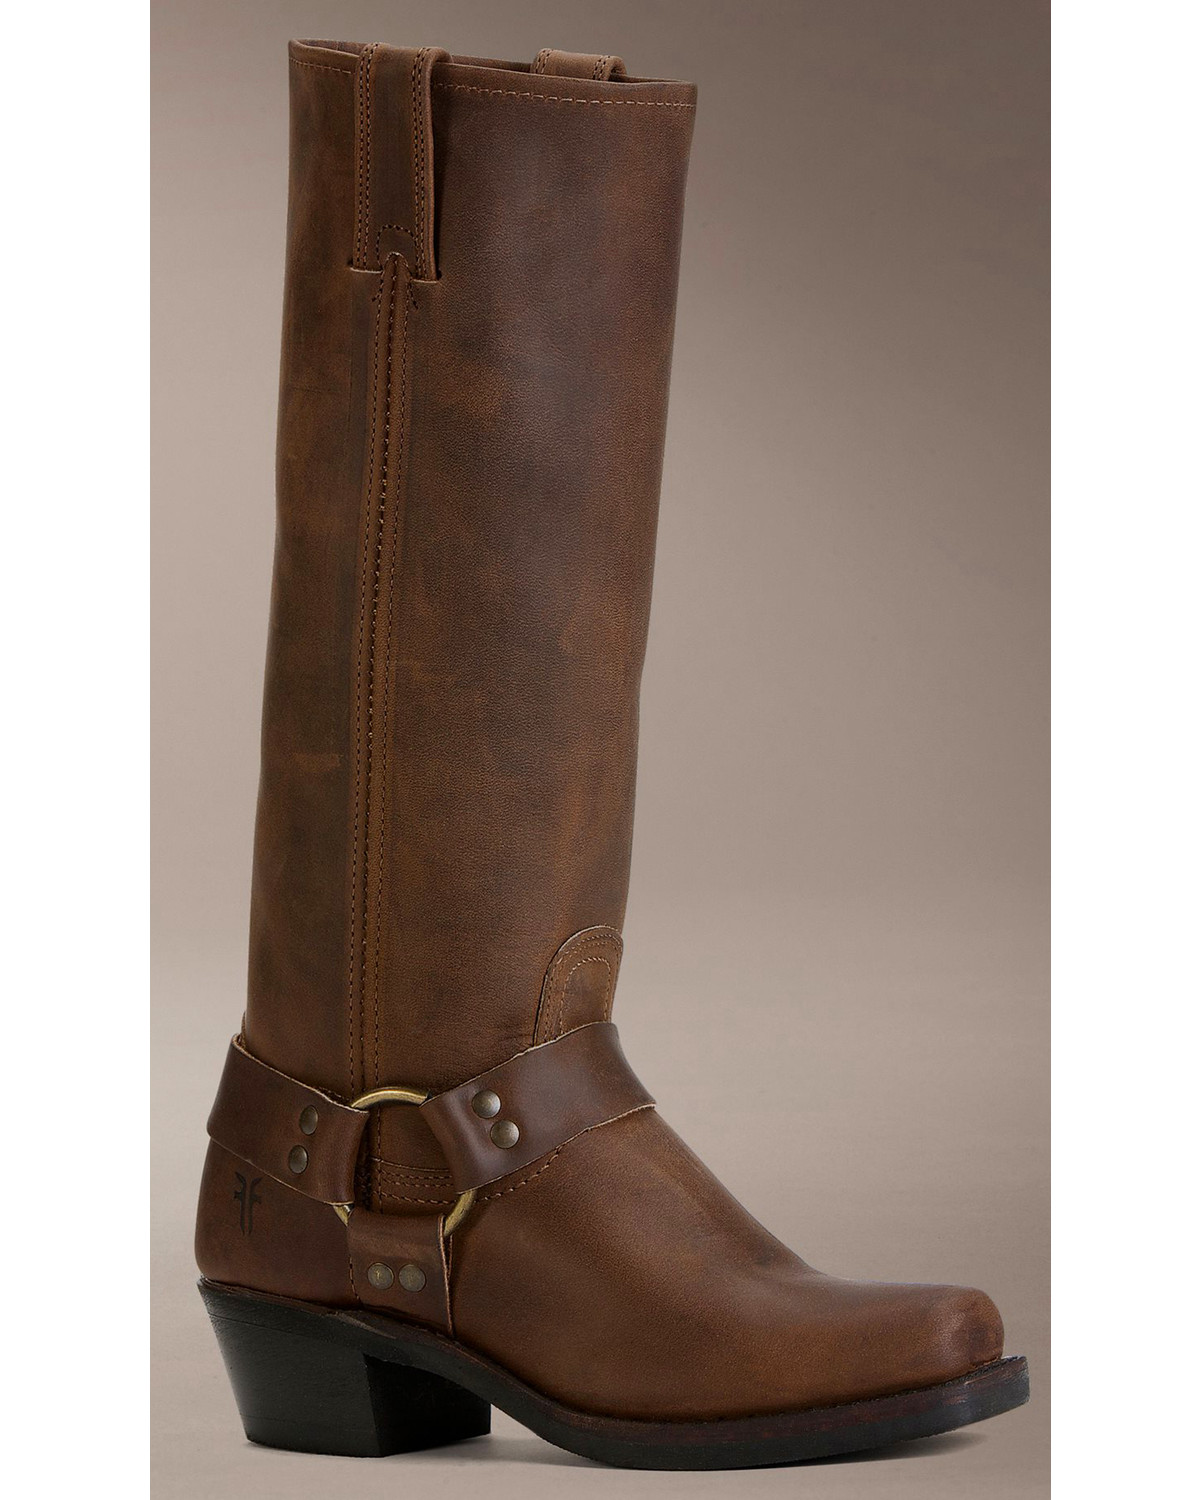 78c293465a77 Frye Women s Harness 15R Riding Boots - Square Toe